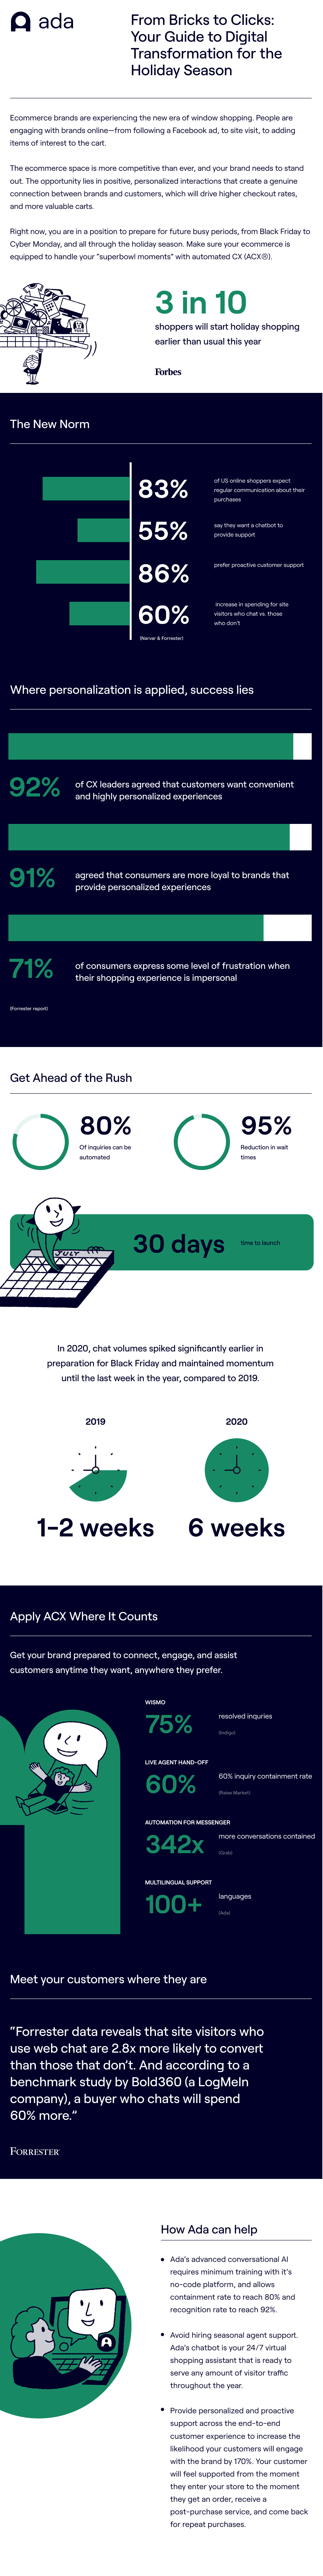 Infographic - From Bricks to Clicks_ Your Guide to Digital Transformation for the Holiday Season - JUly 2024